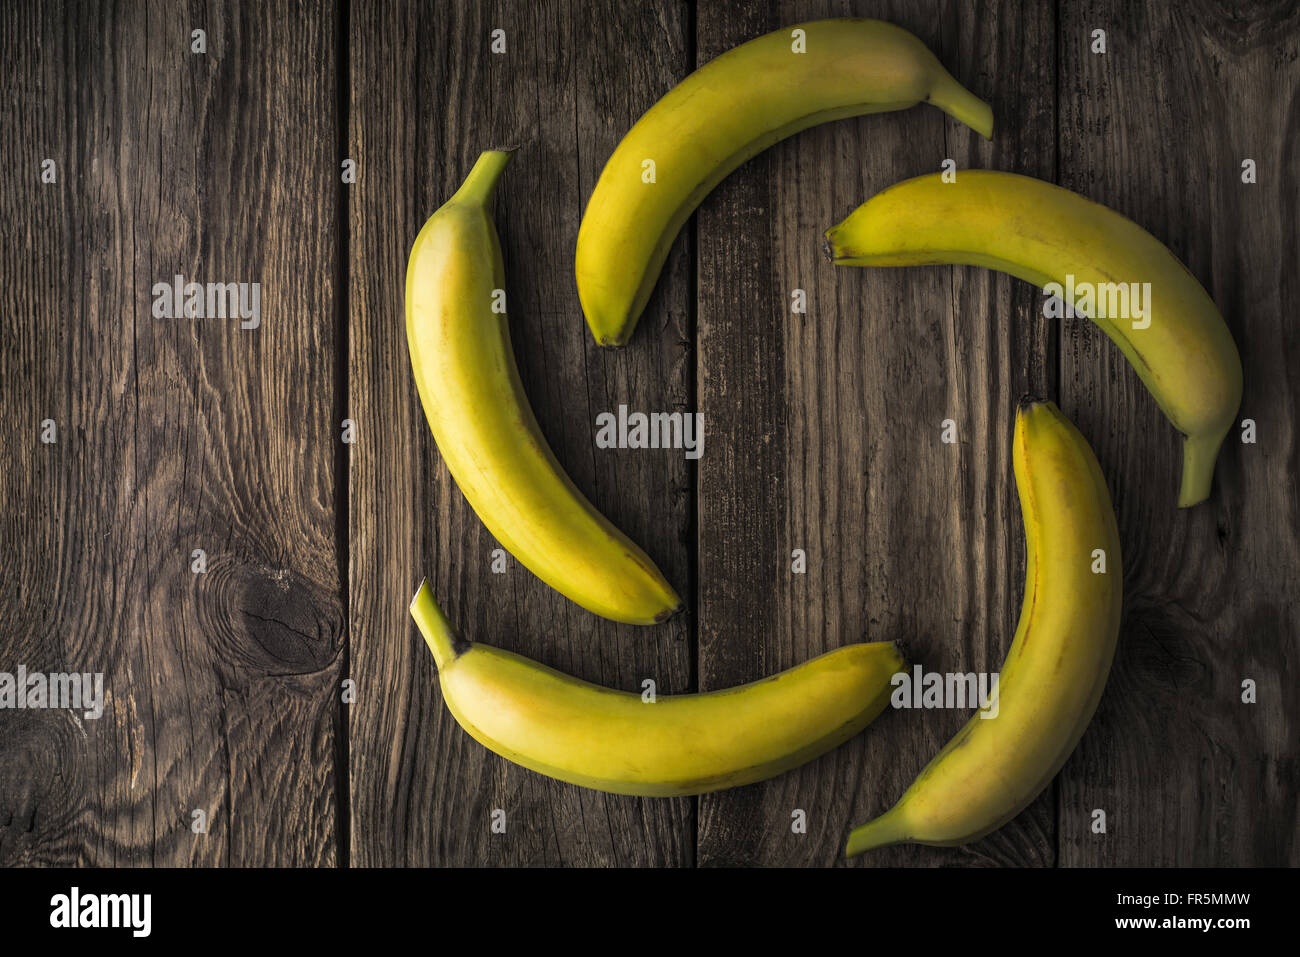 Green bananas on an old wooden table horizontal - Stock Image